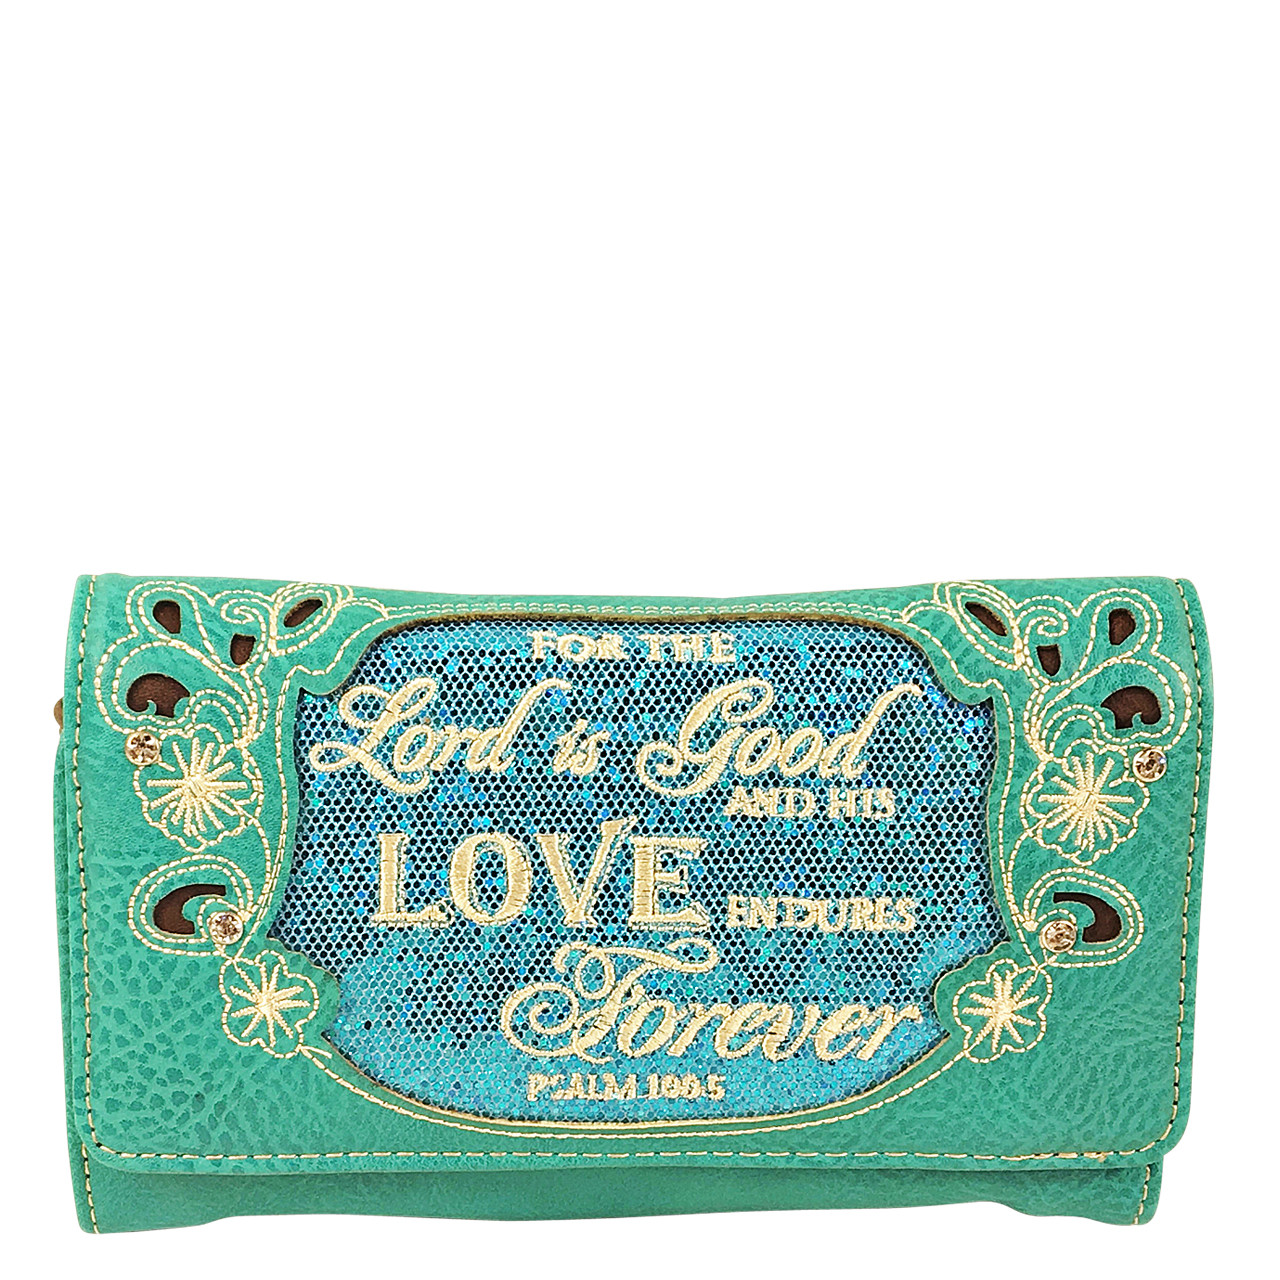 TURQUOISE BIBLE LOVE QUOTE RHINESTONE STUDDED LOOK CLUTCH TRIFOLD WALLET